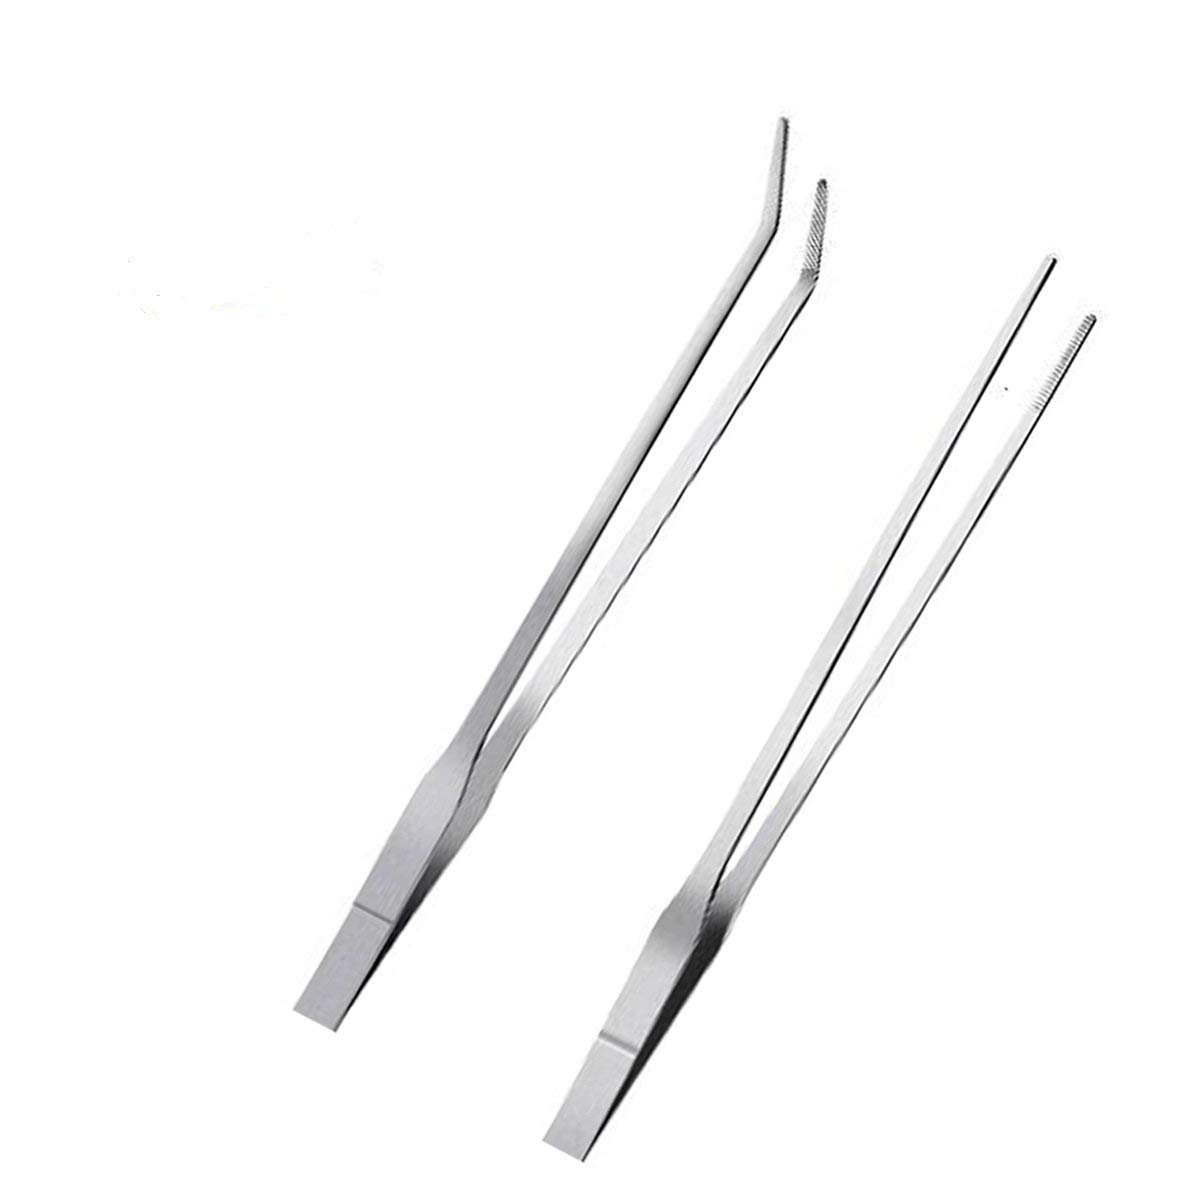 Aquarium Tweezers Stainless Steel Feeding Straight